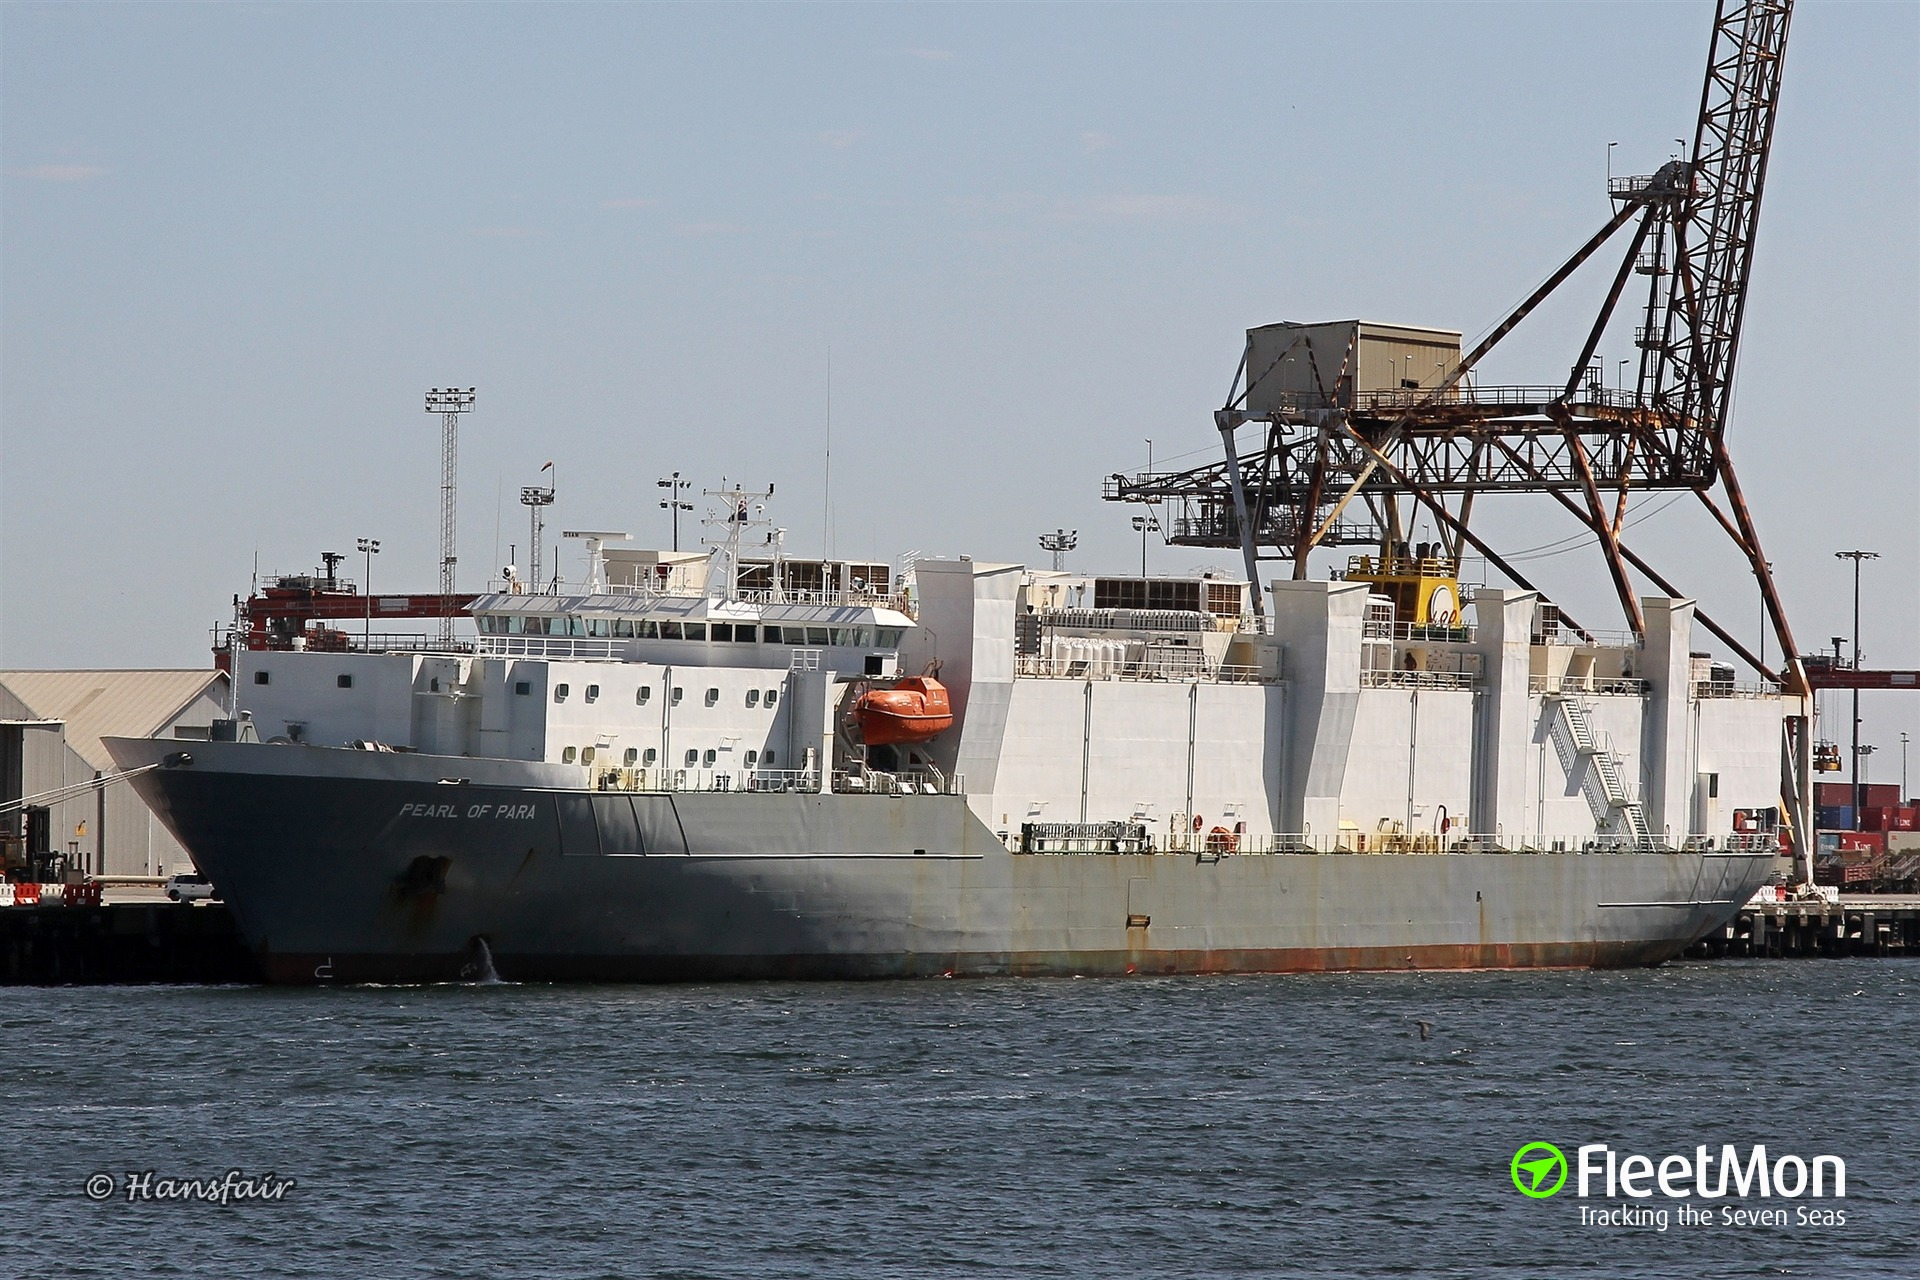 Livestock carrier Pearl of Para returned to Fremantle with cattle on board for repairs